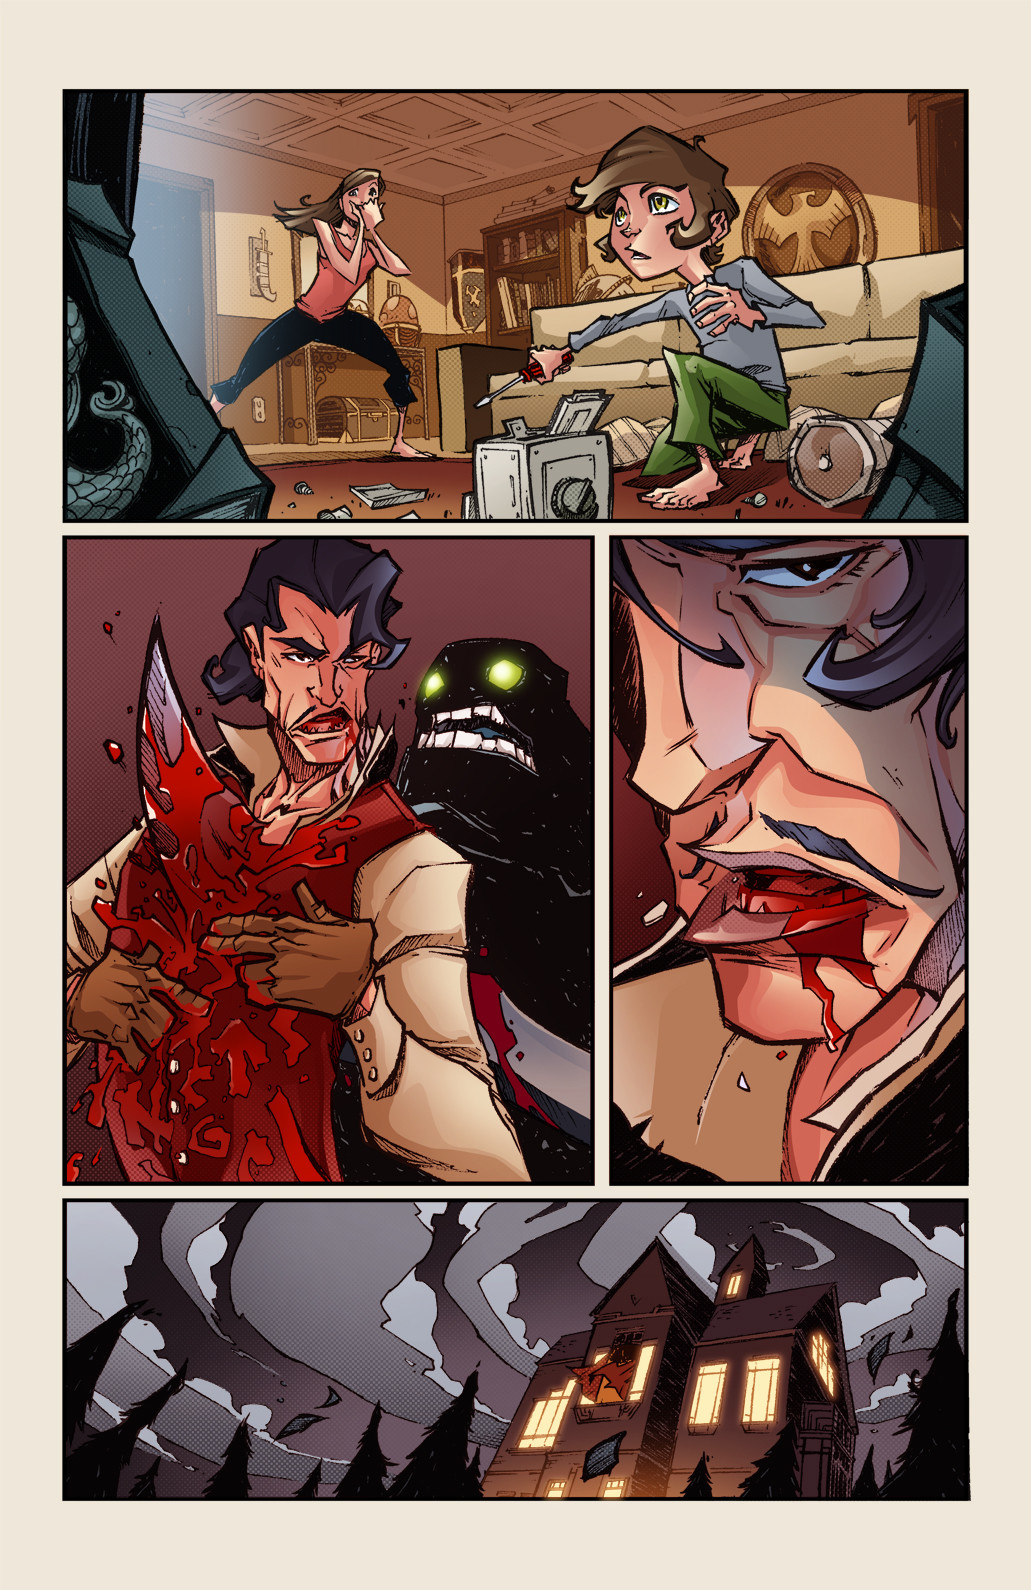 GONERS - #1, page 7